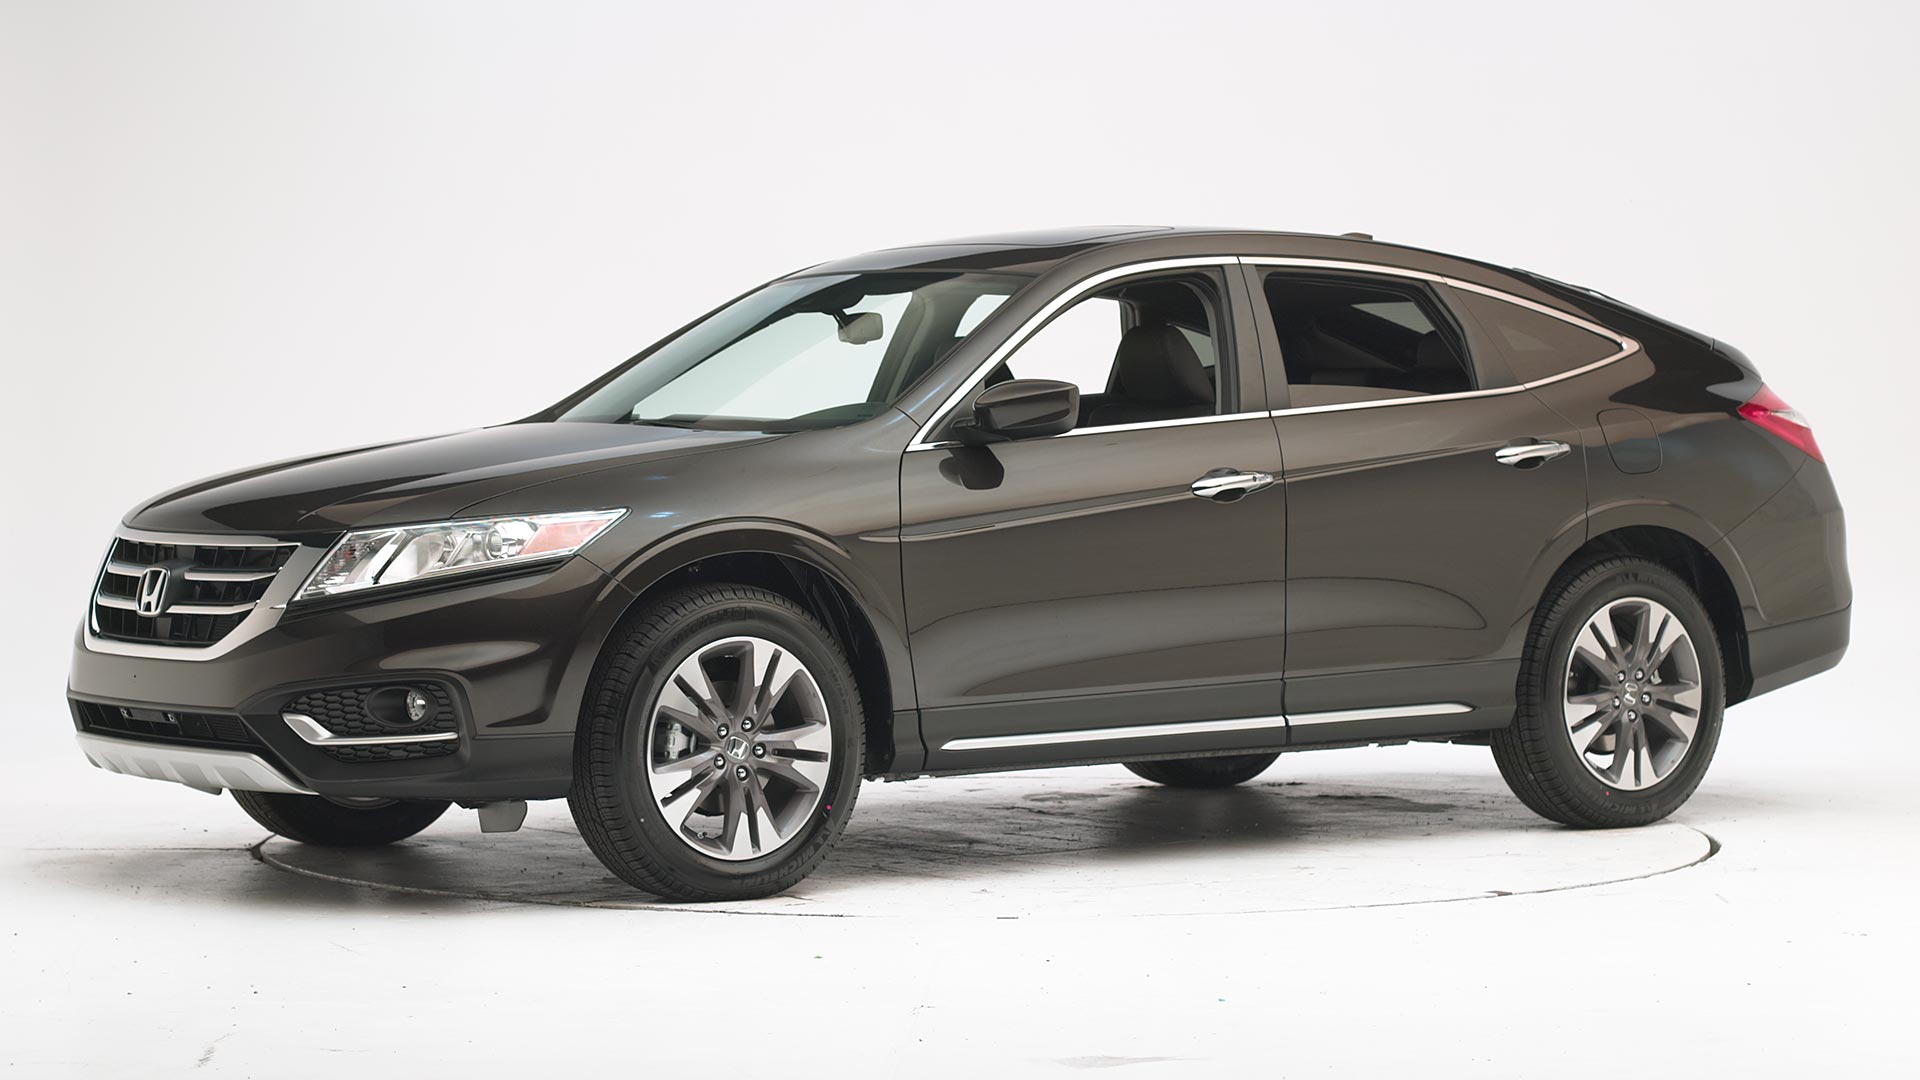 2013 Honda Crosstour 4-door SUV